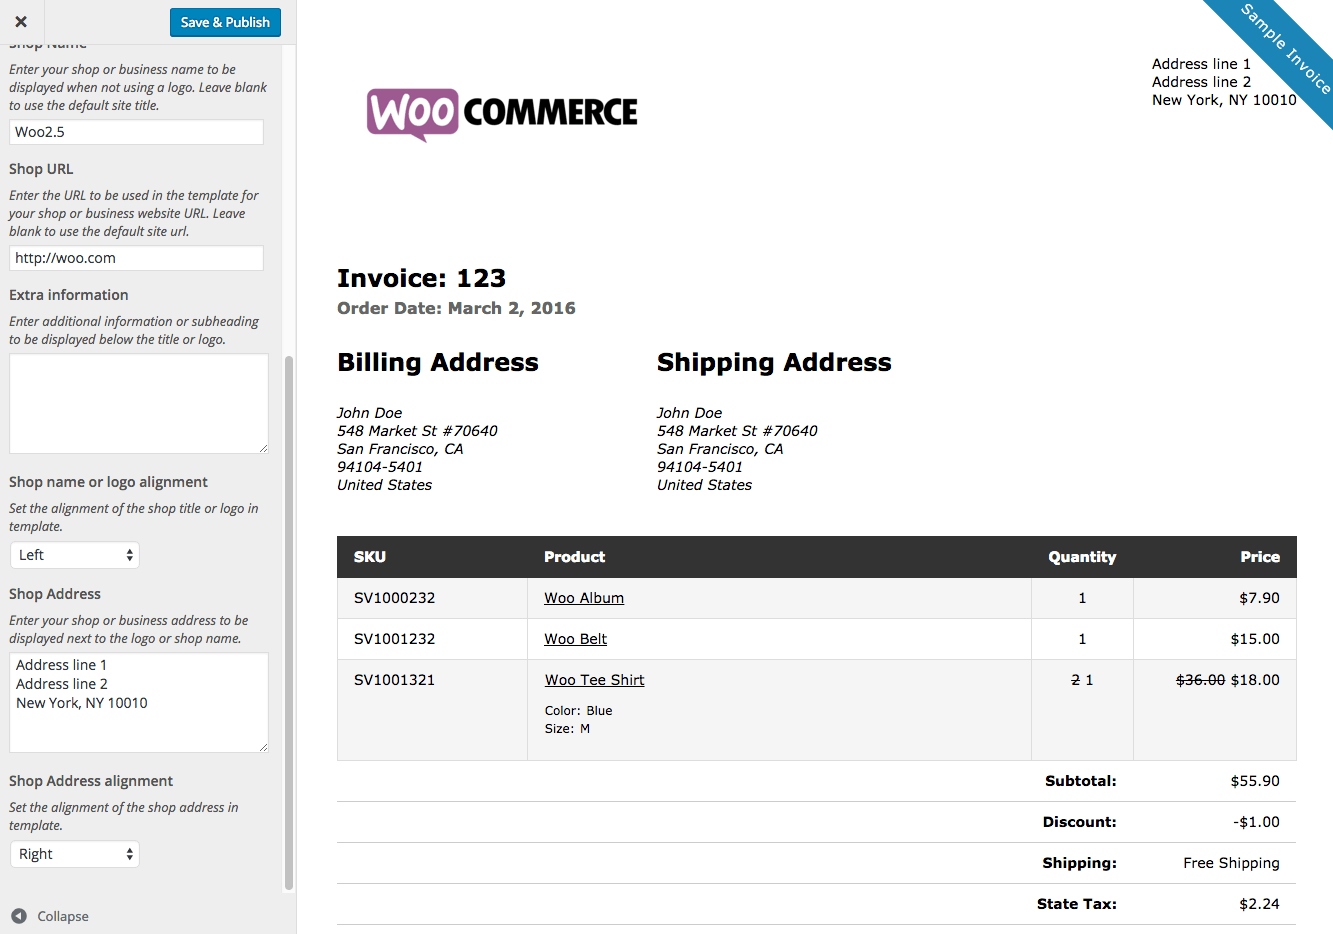 Ebitus  Personable Woocommerce Print Invoices Amp Packing Lists  Woocommerce Docs With Interesting Woocommerce Print Invoices  Packing Lists Customizer With Awesome Account Receipt Also We Acknowledge Receipt Of Your Letter In Addition Receipt Book Maker And Sales Receipt Template Free As Well As Cash Sale Receipt Additionally Vehicle Receipt Of Sale From Docswoocommercecom With Ebitus  Interesting Woocommerce Print Invoices Amp Packing Lists  Woocommerce Docs With Awesome Woocommerce Print Invoices  Packing Lists Customizer And Personable Account Receipt Also We Acknowledge Receipt Of Your Letter In Addition Receipt Book Maker From Docswoocommercecom